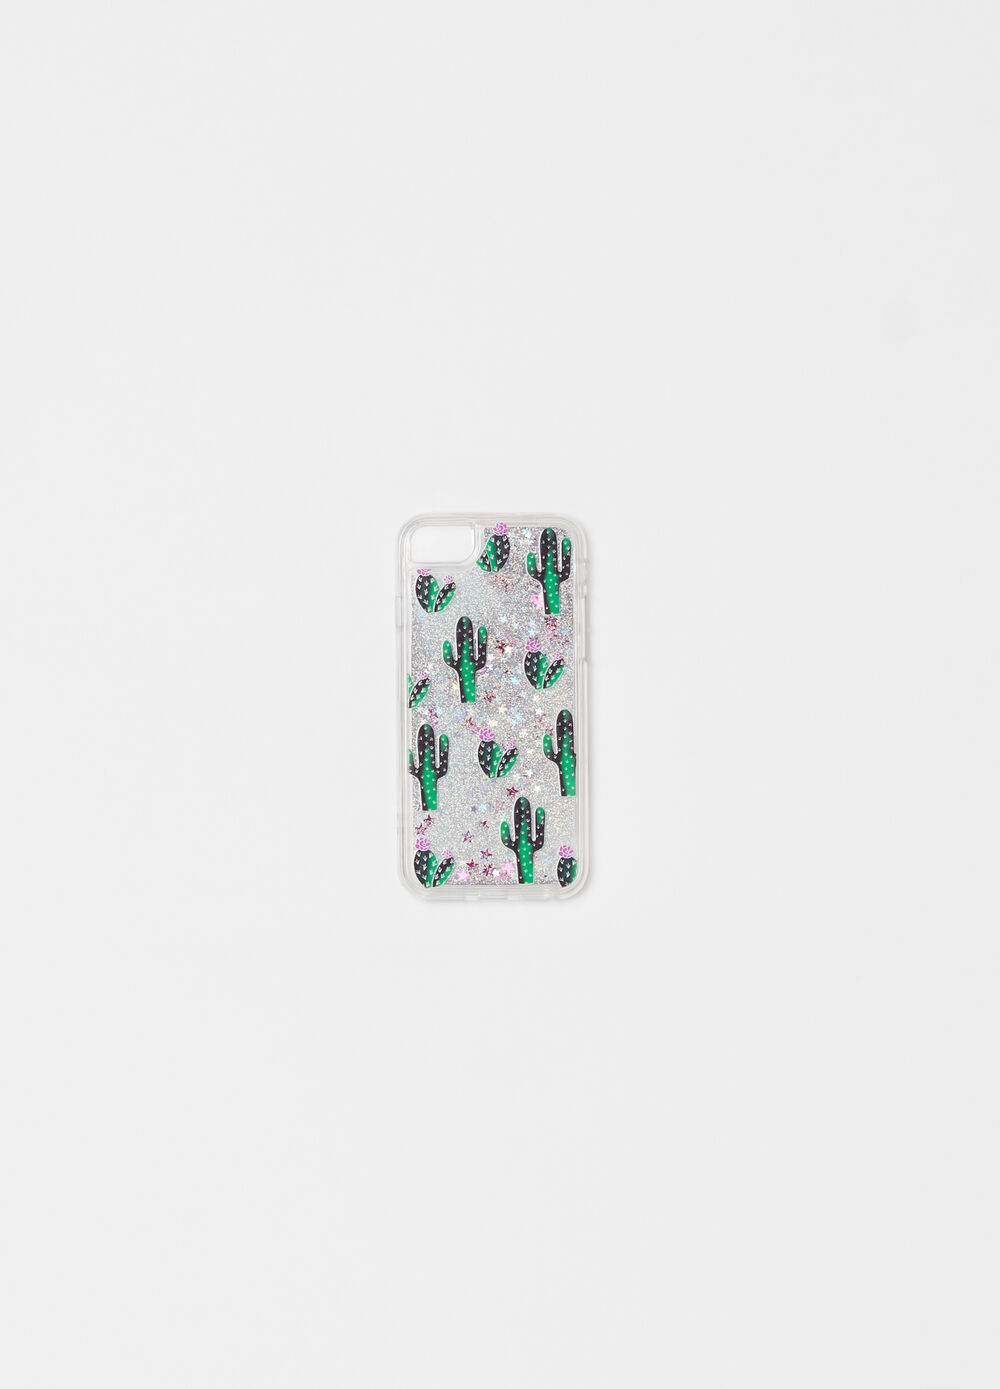 Telephone cover with glitter cactus print